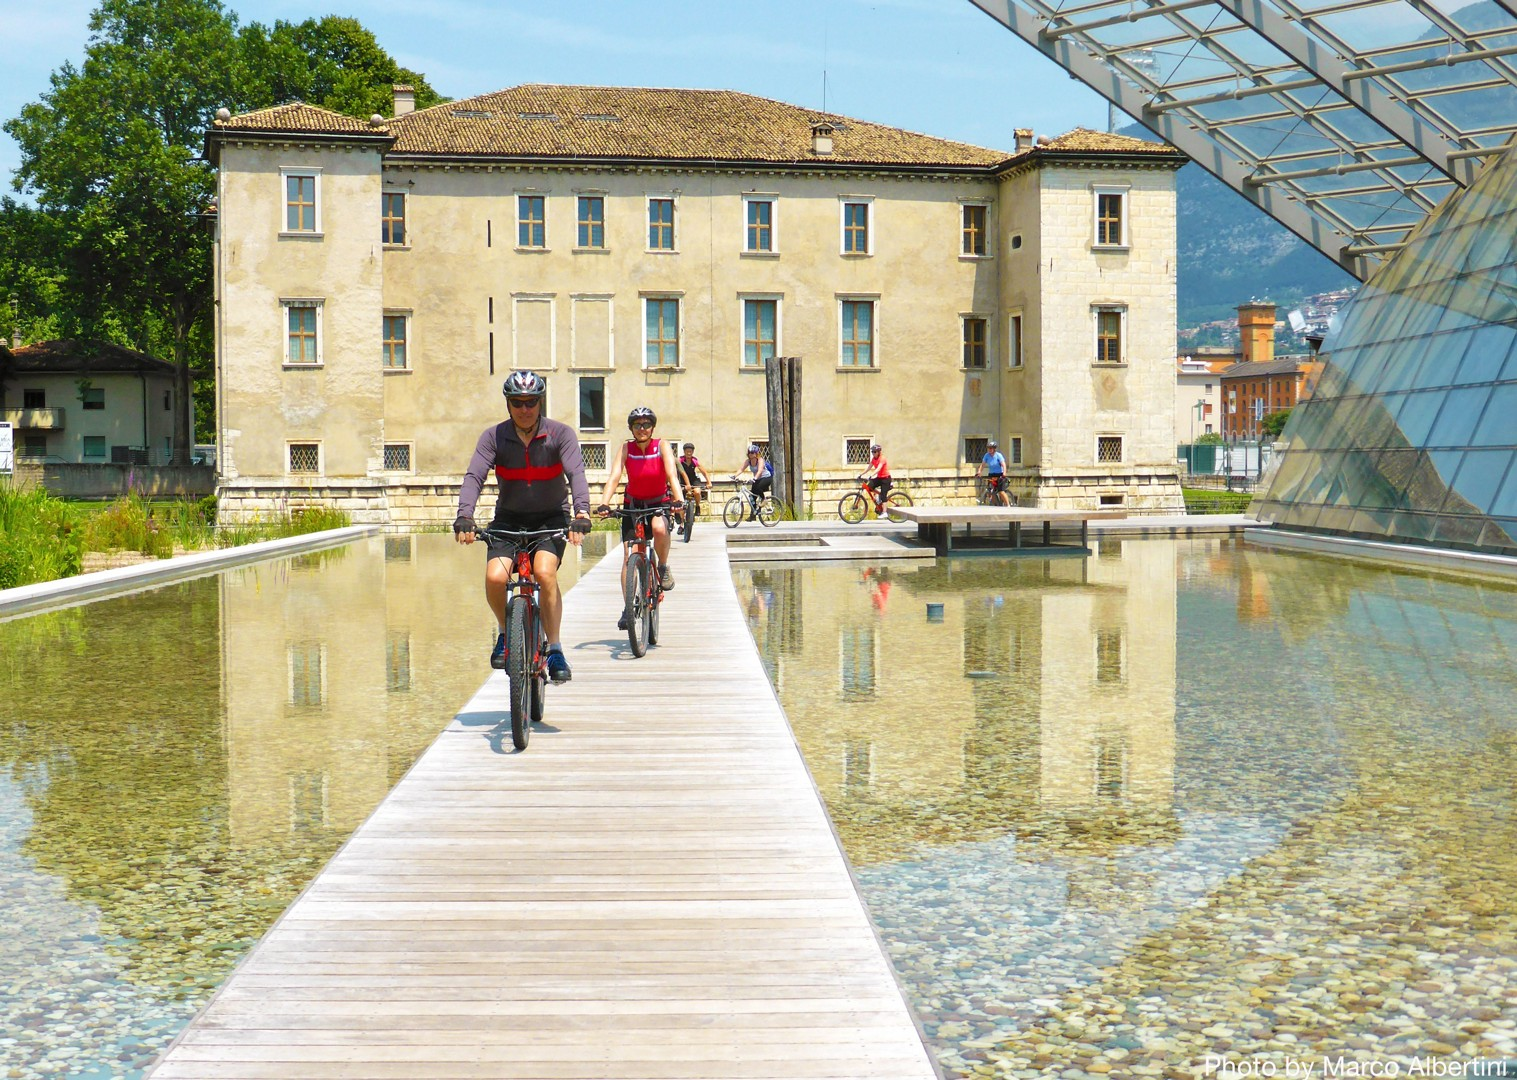 cultural-leisurely-guided-cycling-adventure-italy.jpg - Austria and Italy - La Via Claudia - Guided Leisure Cycling Holiday - Leisure Cycling